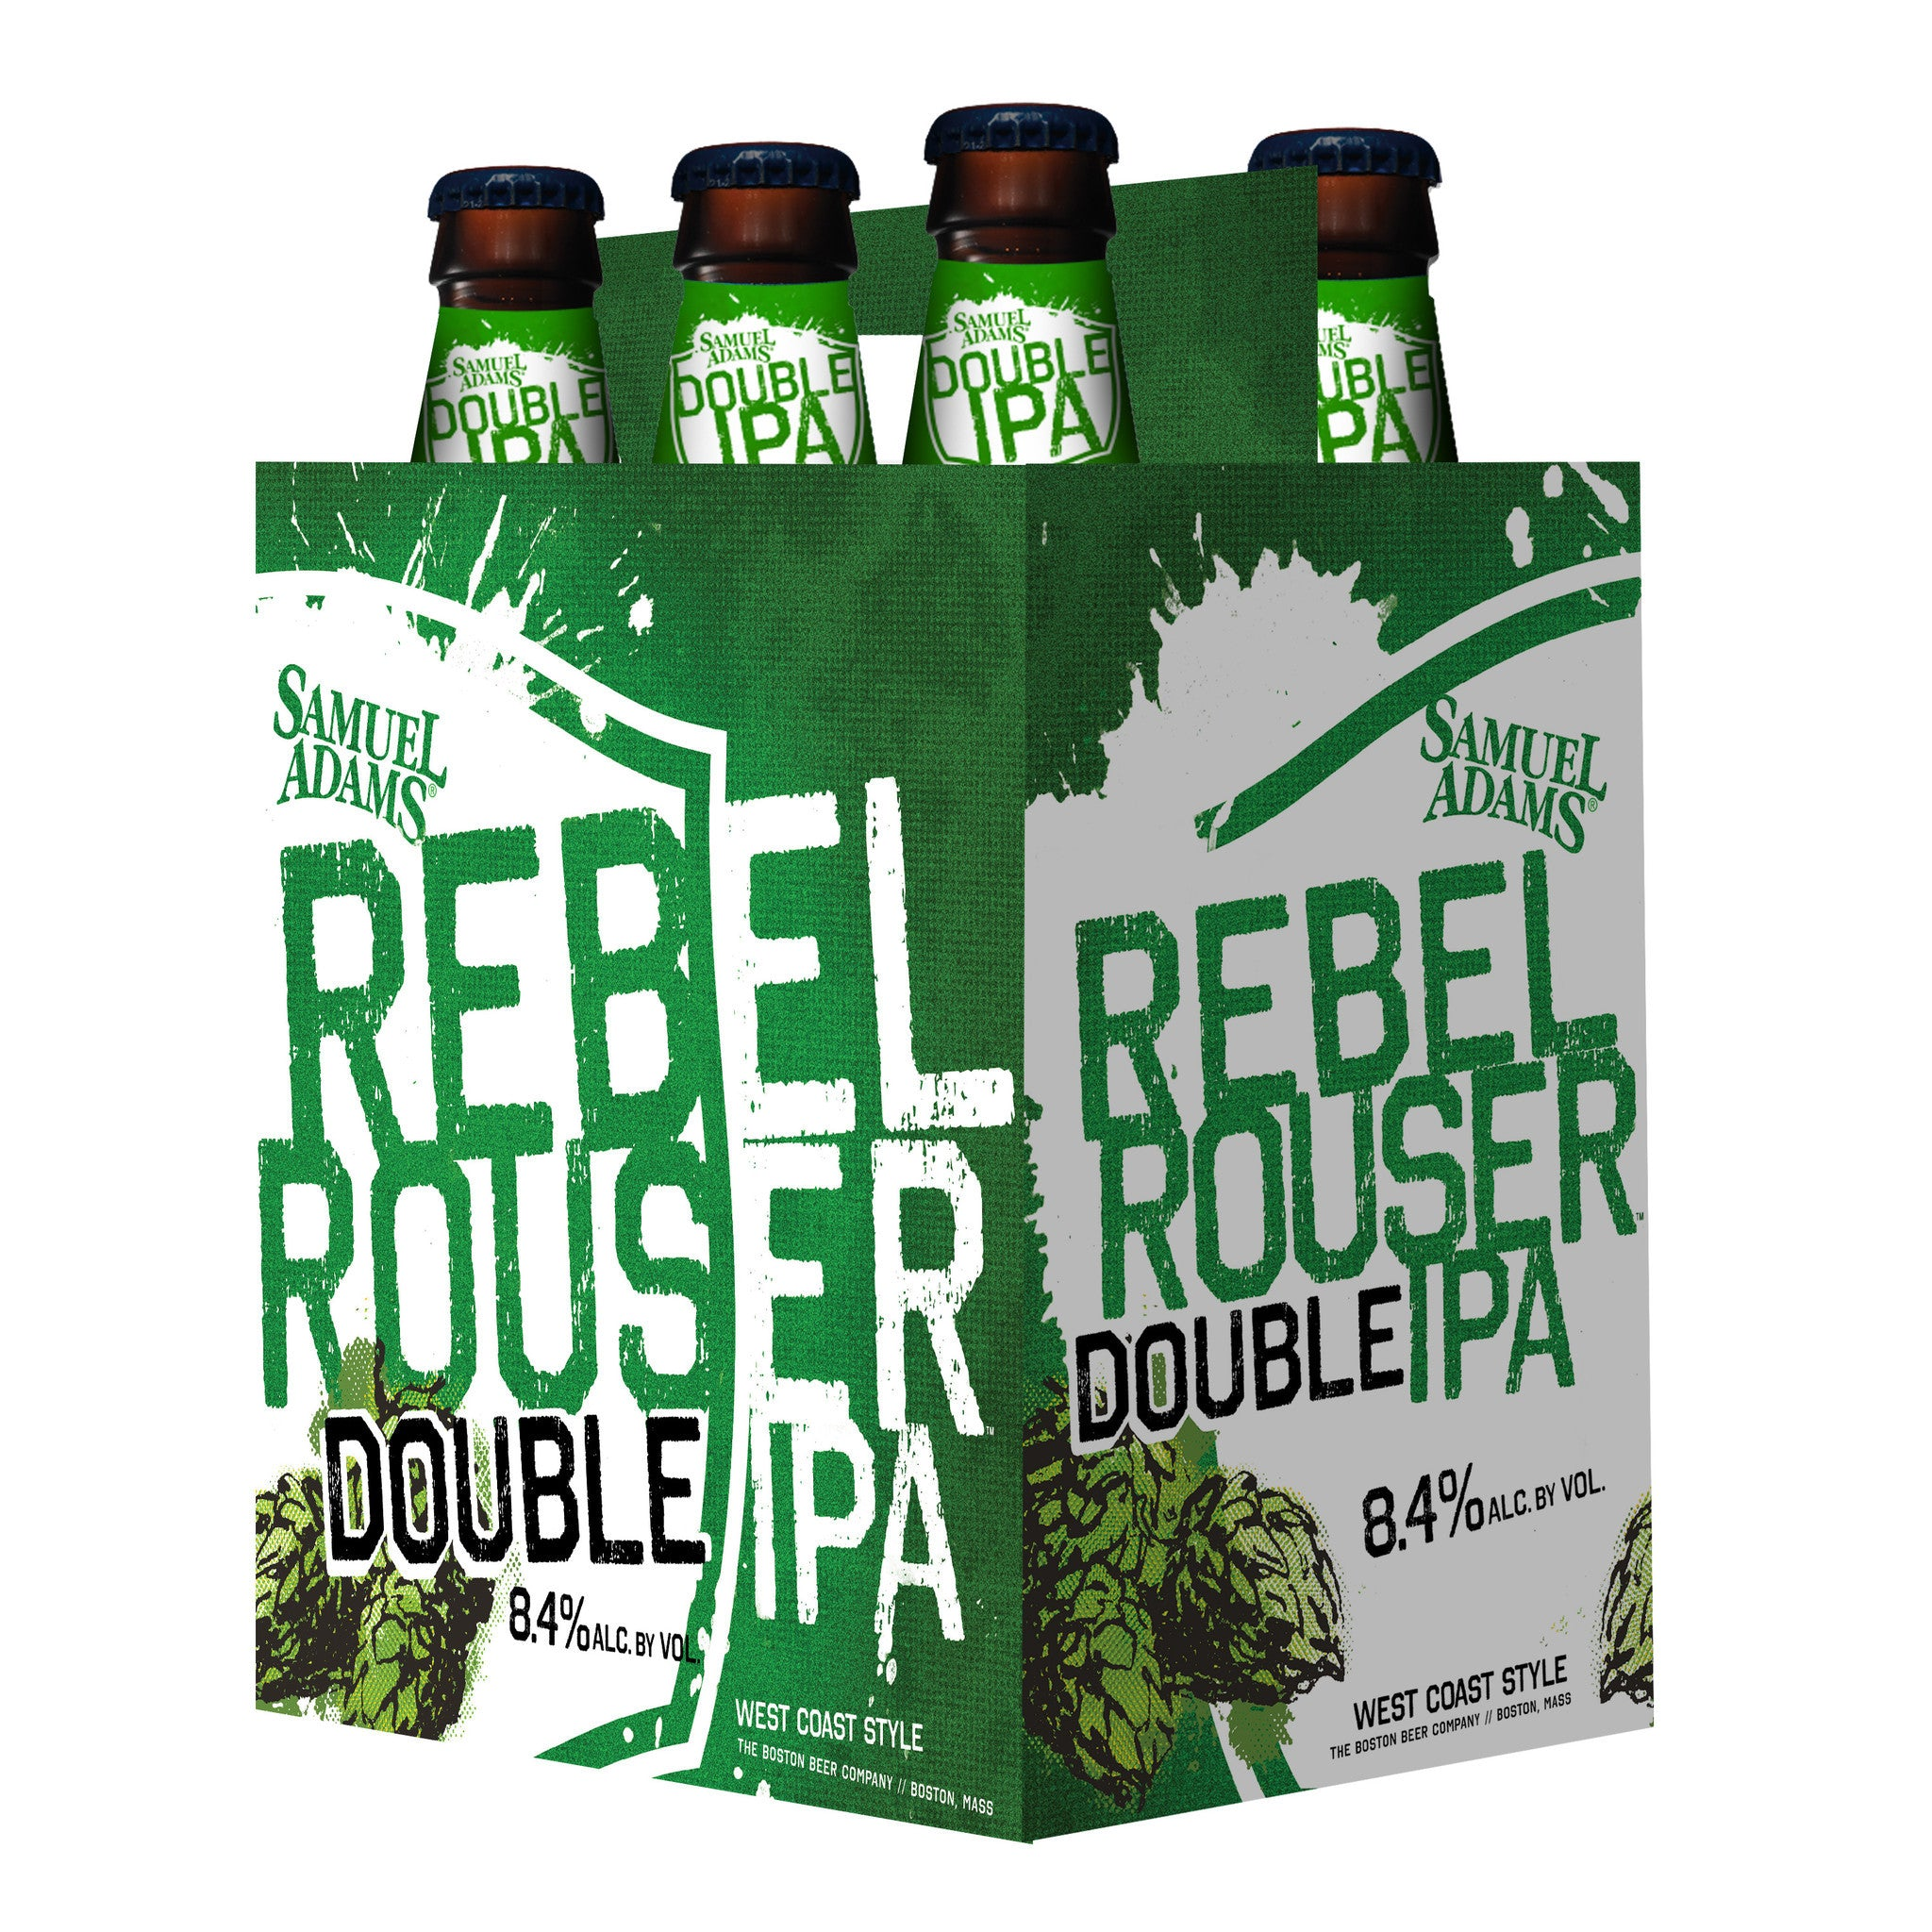 Sam Adams Rebel Rouser Double Ipa 6 Pk